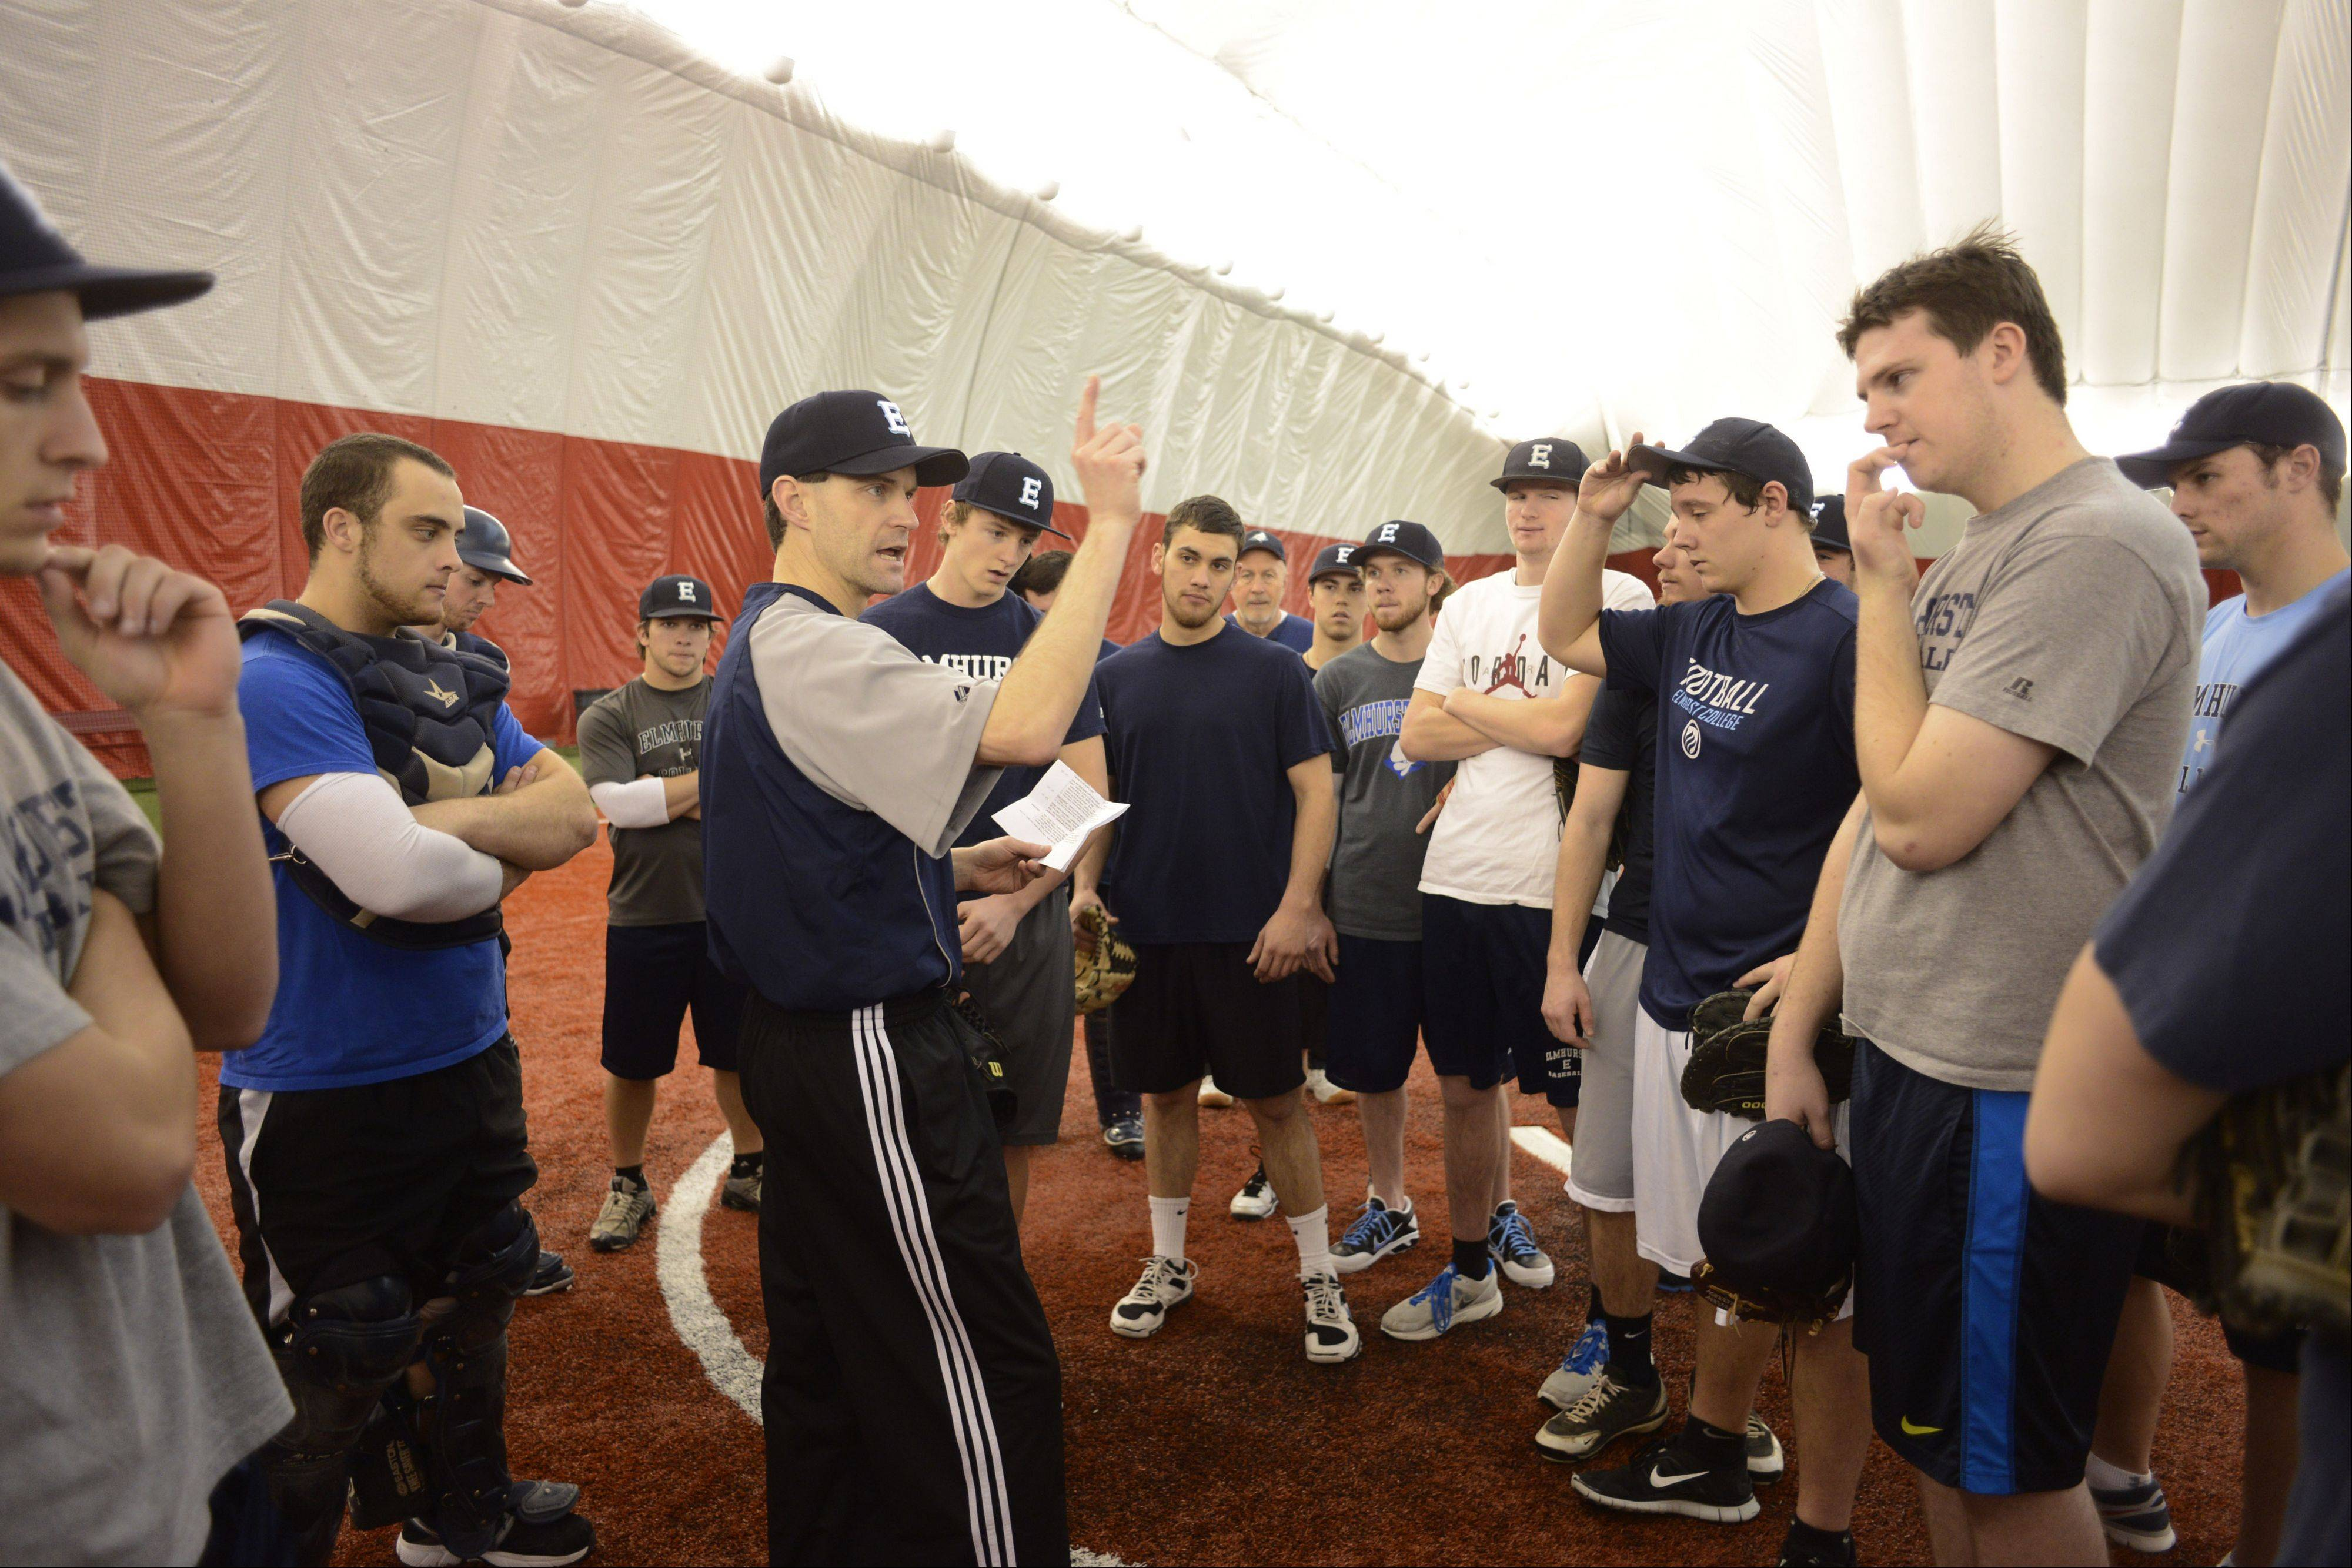 Elmhurst College head baseball coach Joel Southern leads his team during a practice at the Dome at the Ballpark in Rosemont.